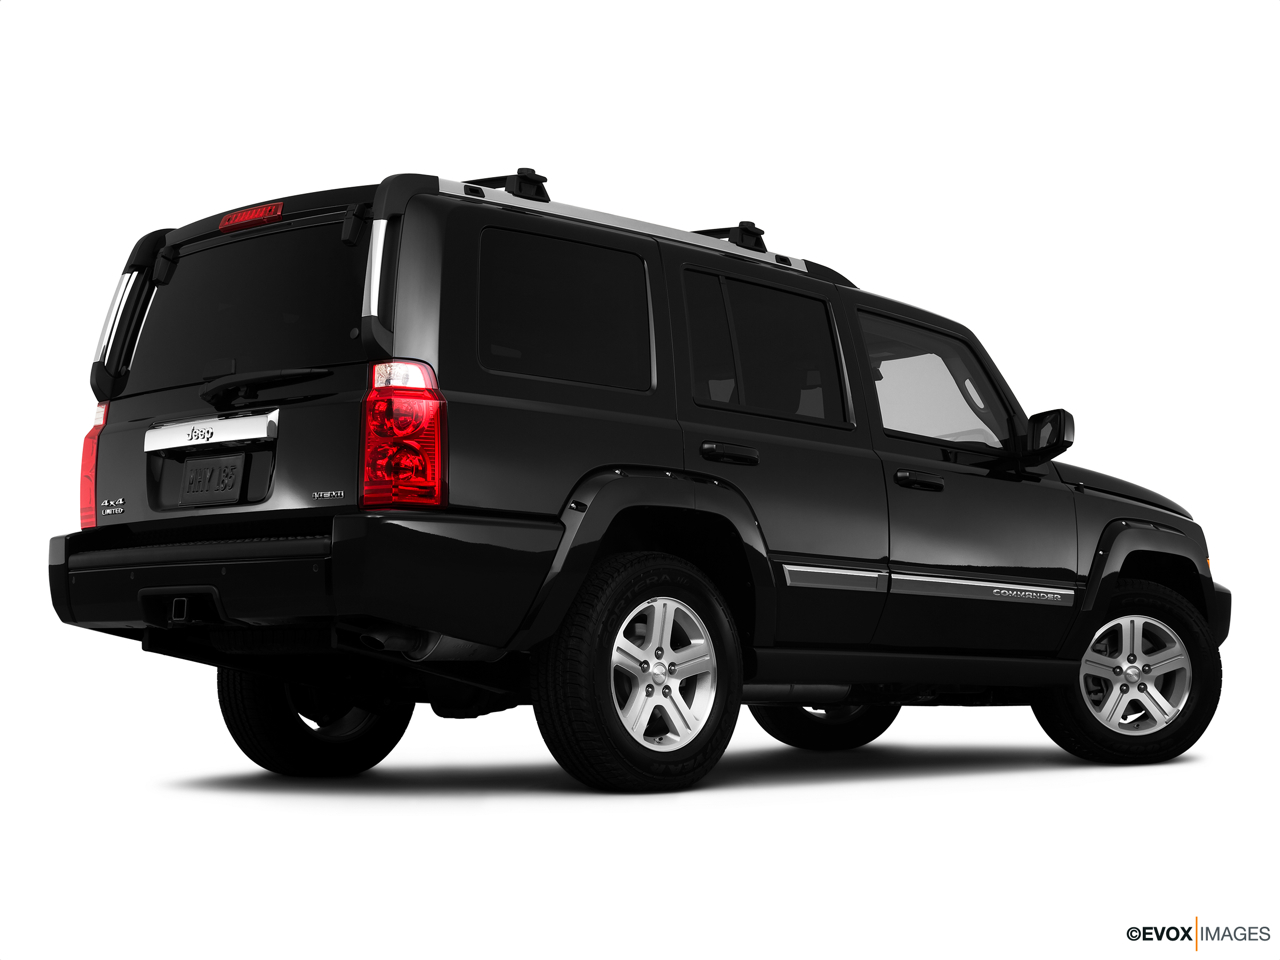 2010 Jeep Commander Limited Low/wide rear 5/8.